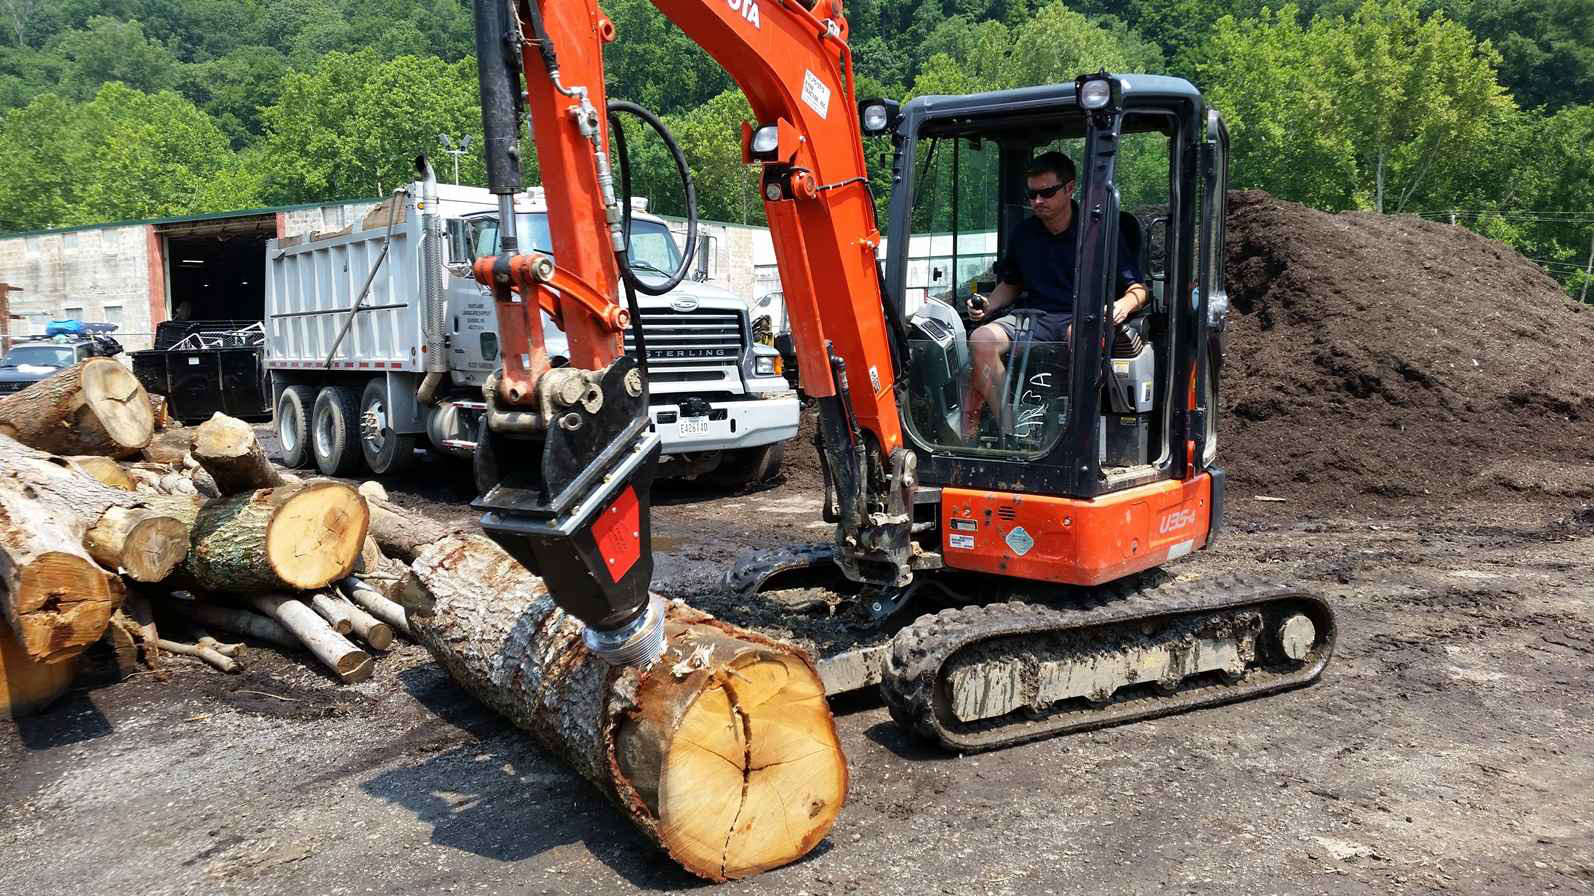 Black Splitter Attachment Makes Wood Processing Easier